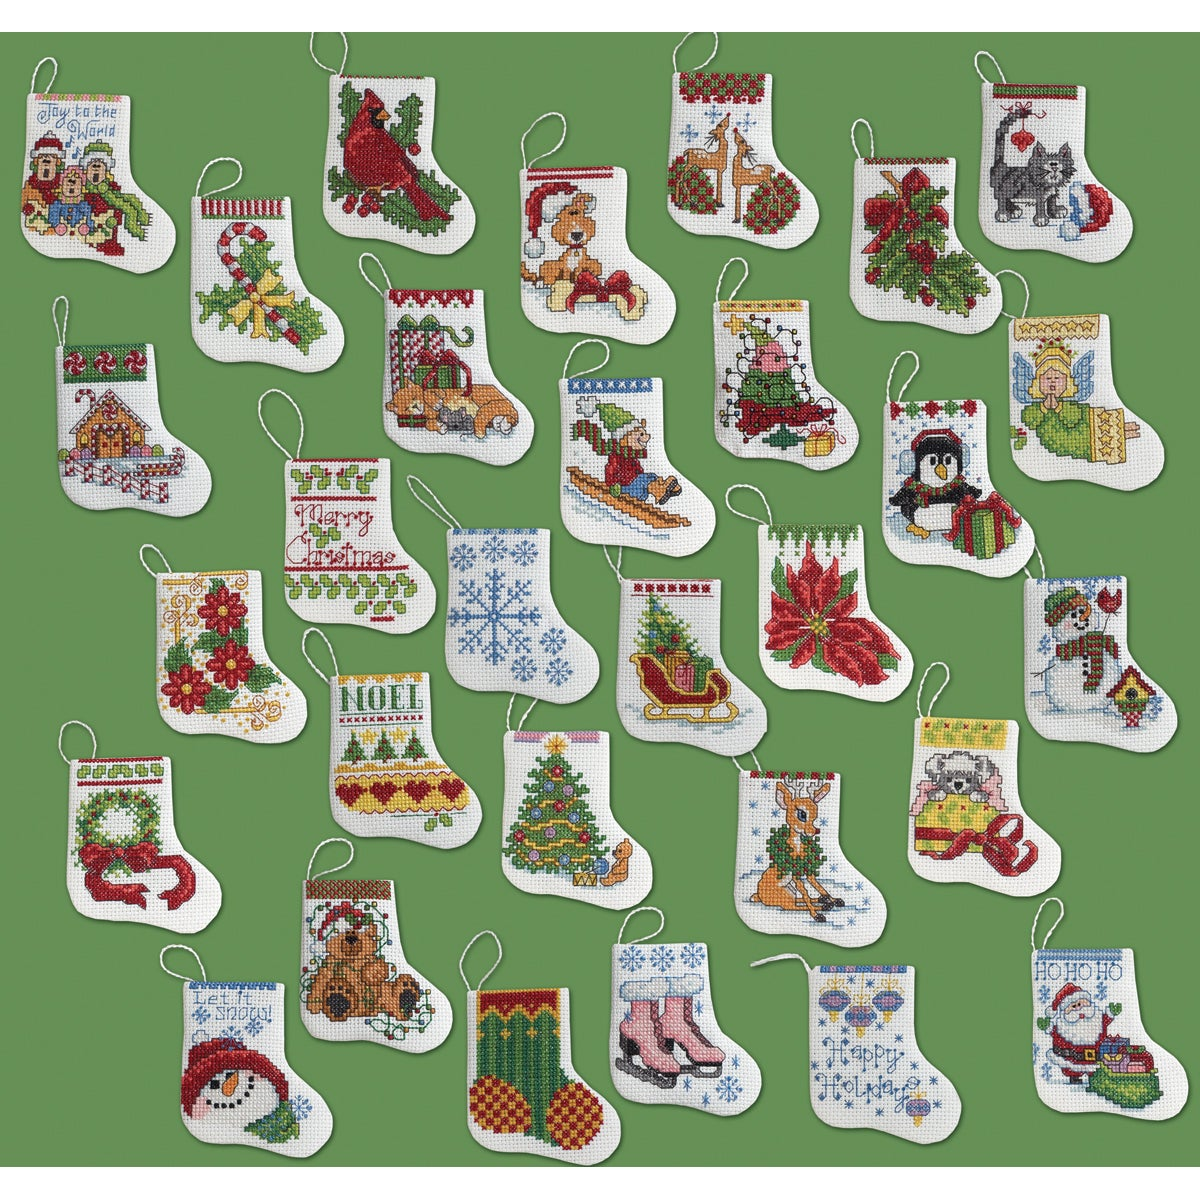 """Bucilla More Tiny Stockings Ornaments Counted Cross Stitch Kit-2-1/2""""X3"""" 14 Count Set Of 30 at Sears.com"""